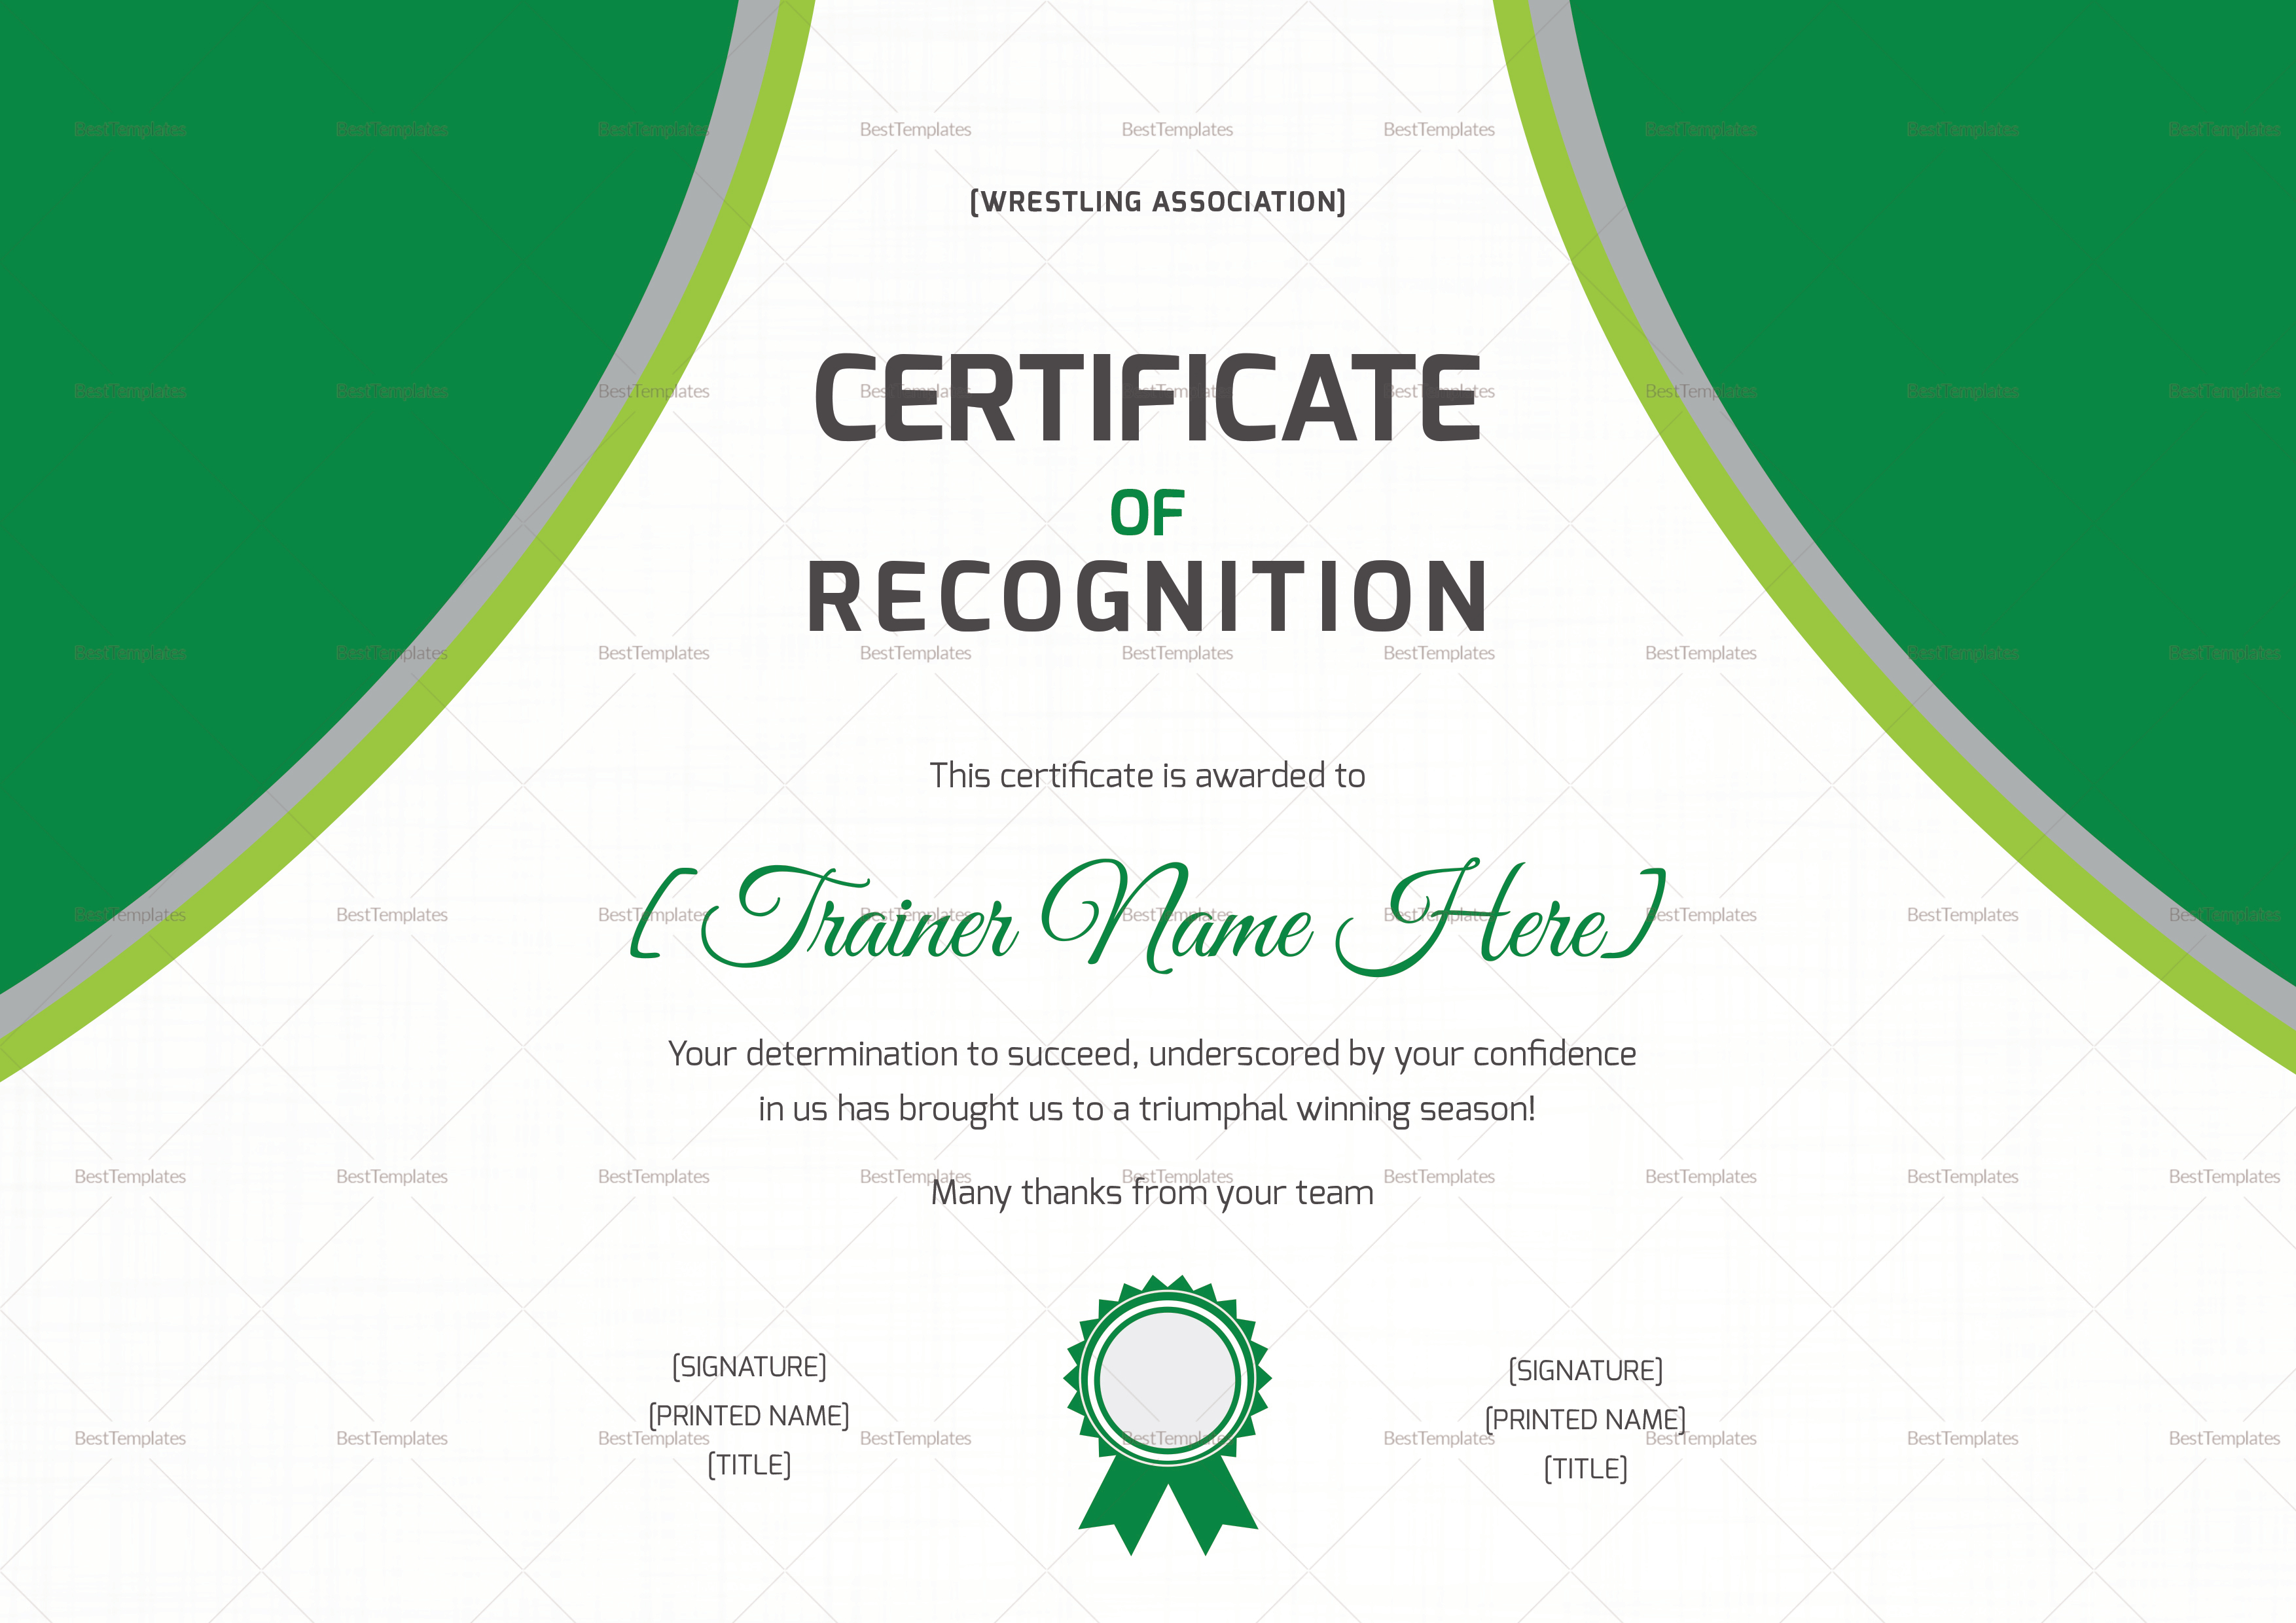 Wrestling Recognition Certificate Design Template